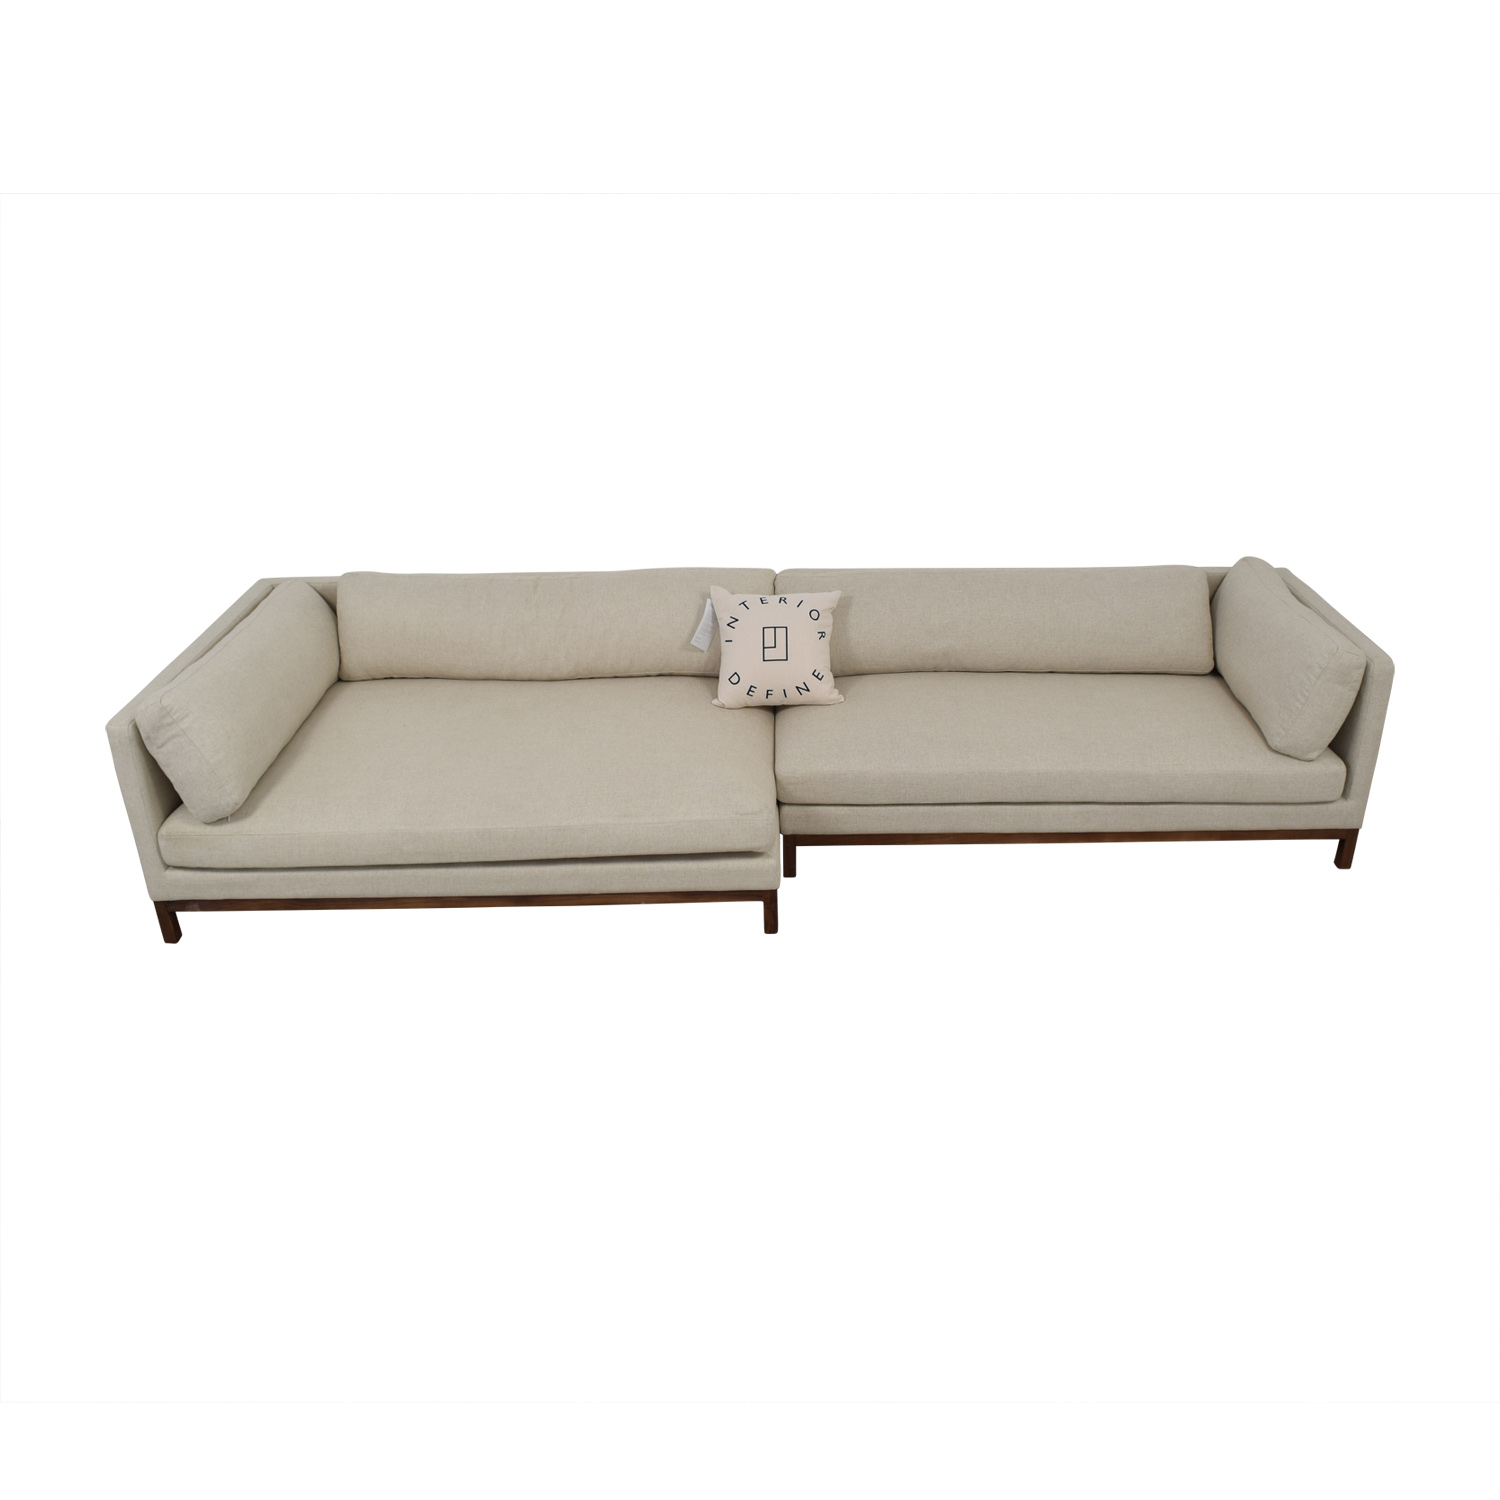 Jasper Left Chaise Sectional price